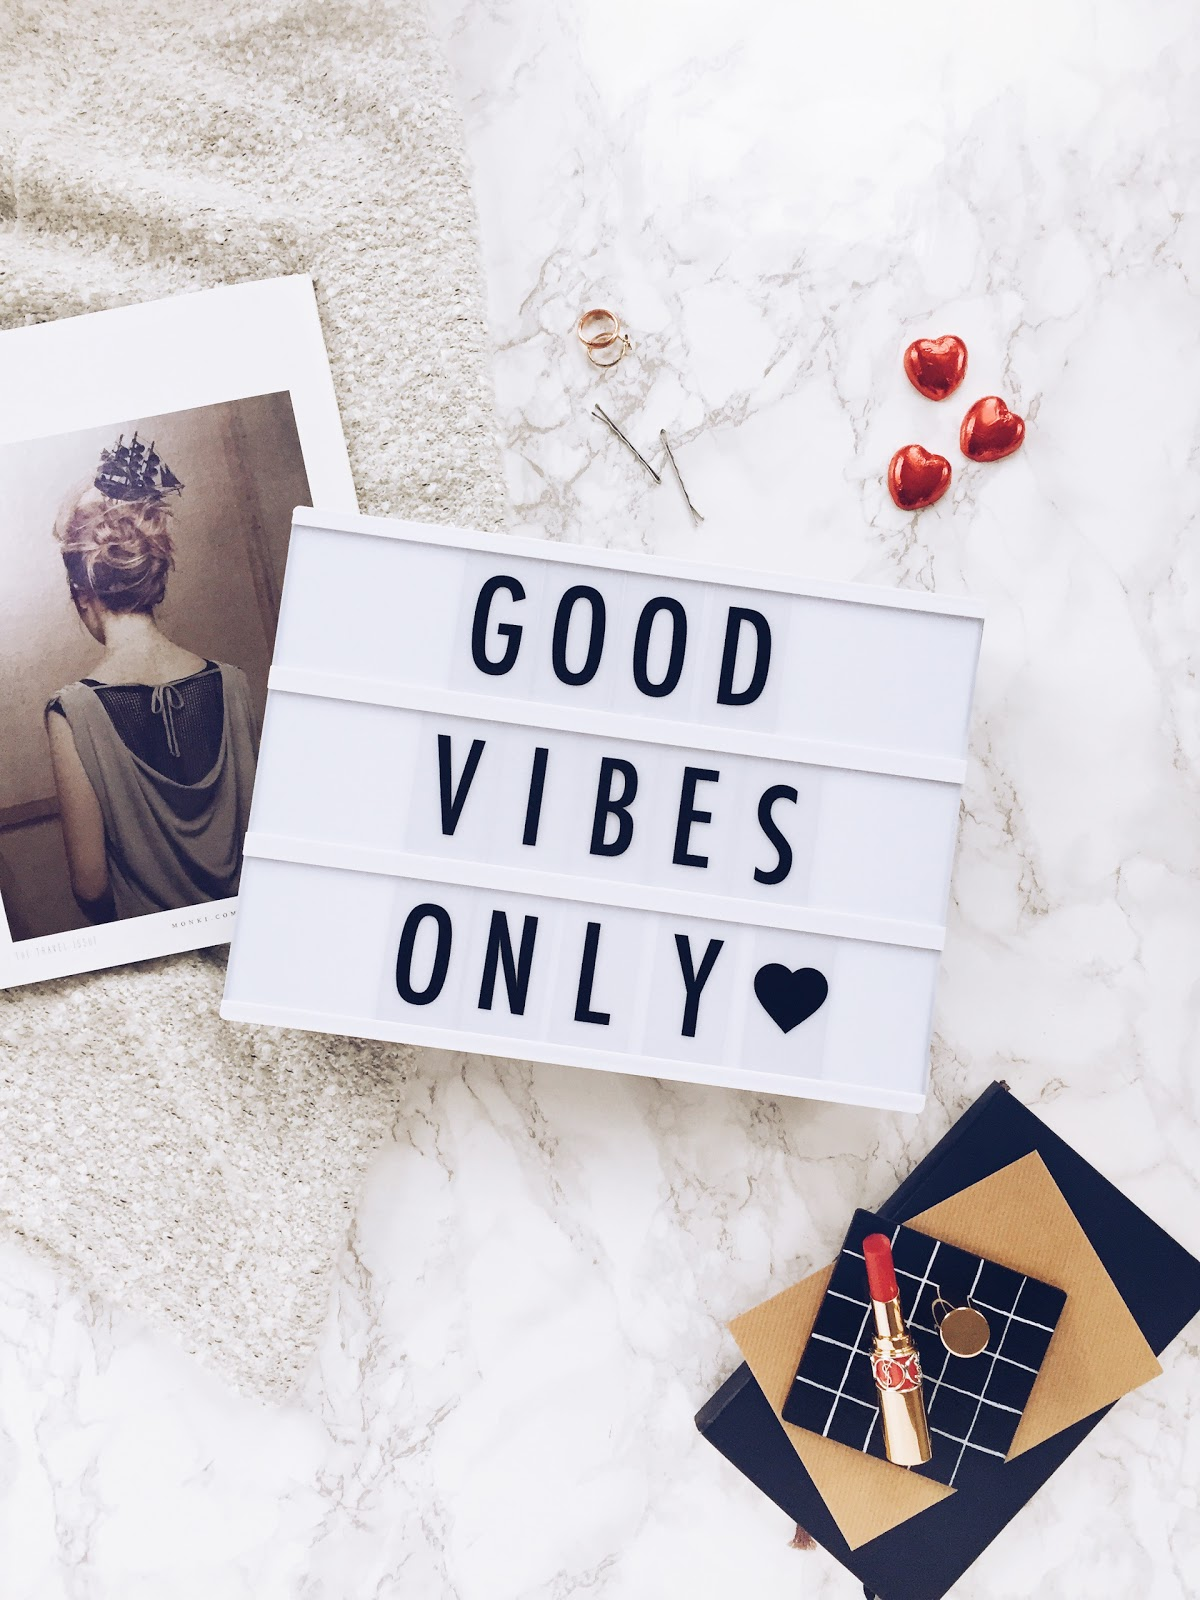 8 Thoughtful Ways To Make Someone's Day, good vibes only, positive quotes